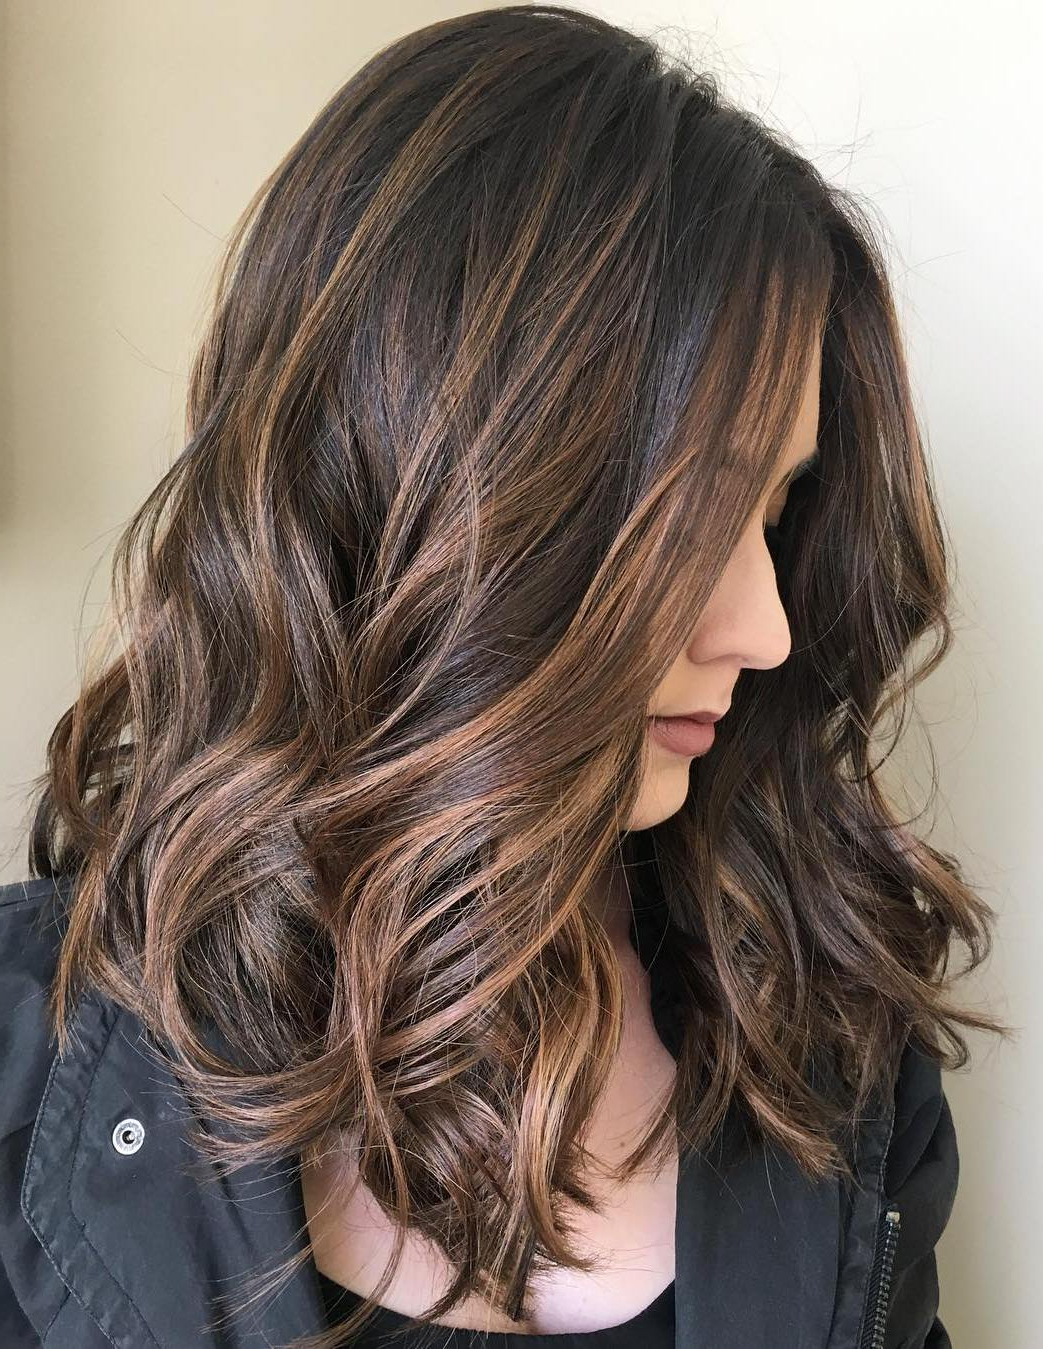 70 Balayage Hair Color Ideas With Blonde, Brown And Caramel Highlights Intended For Most Recent Medium Brown Tones Hairstyles With Subtle Highlights (Gallery 5 of 20)